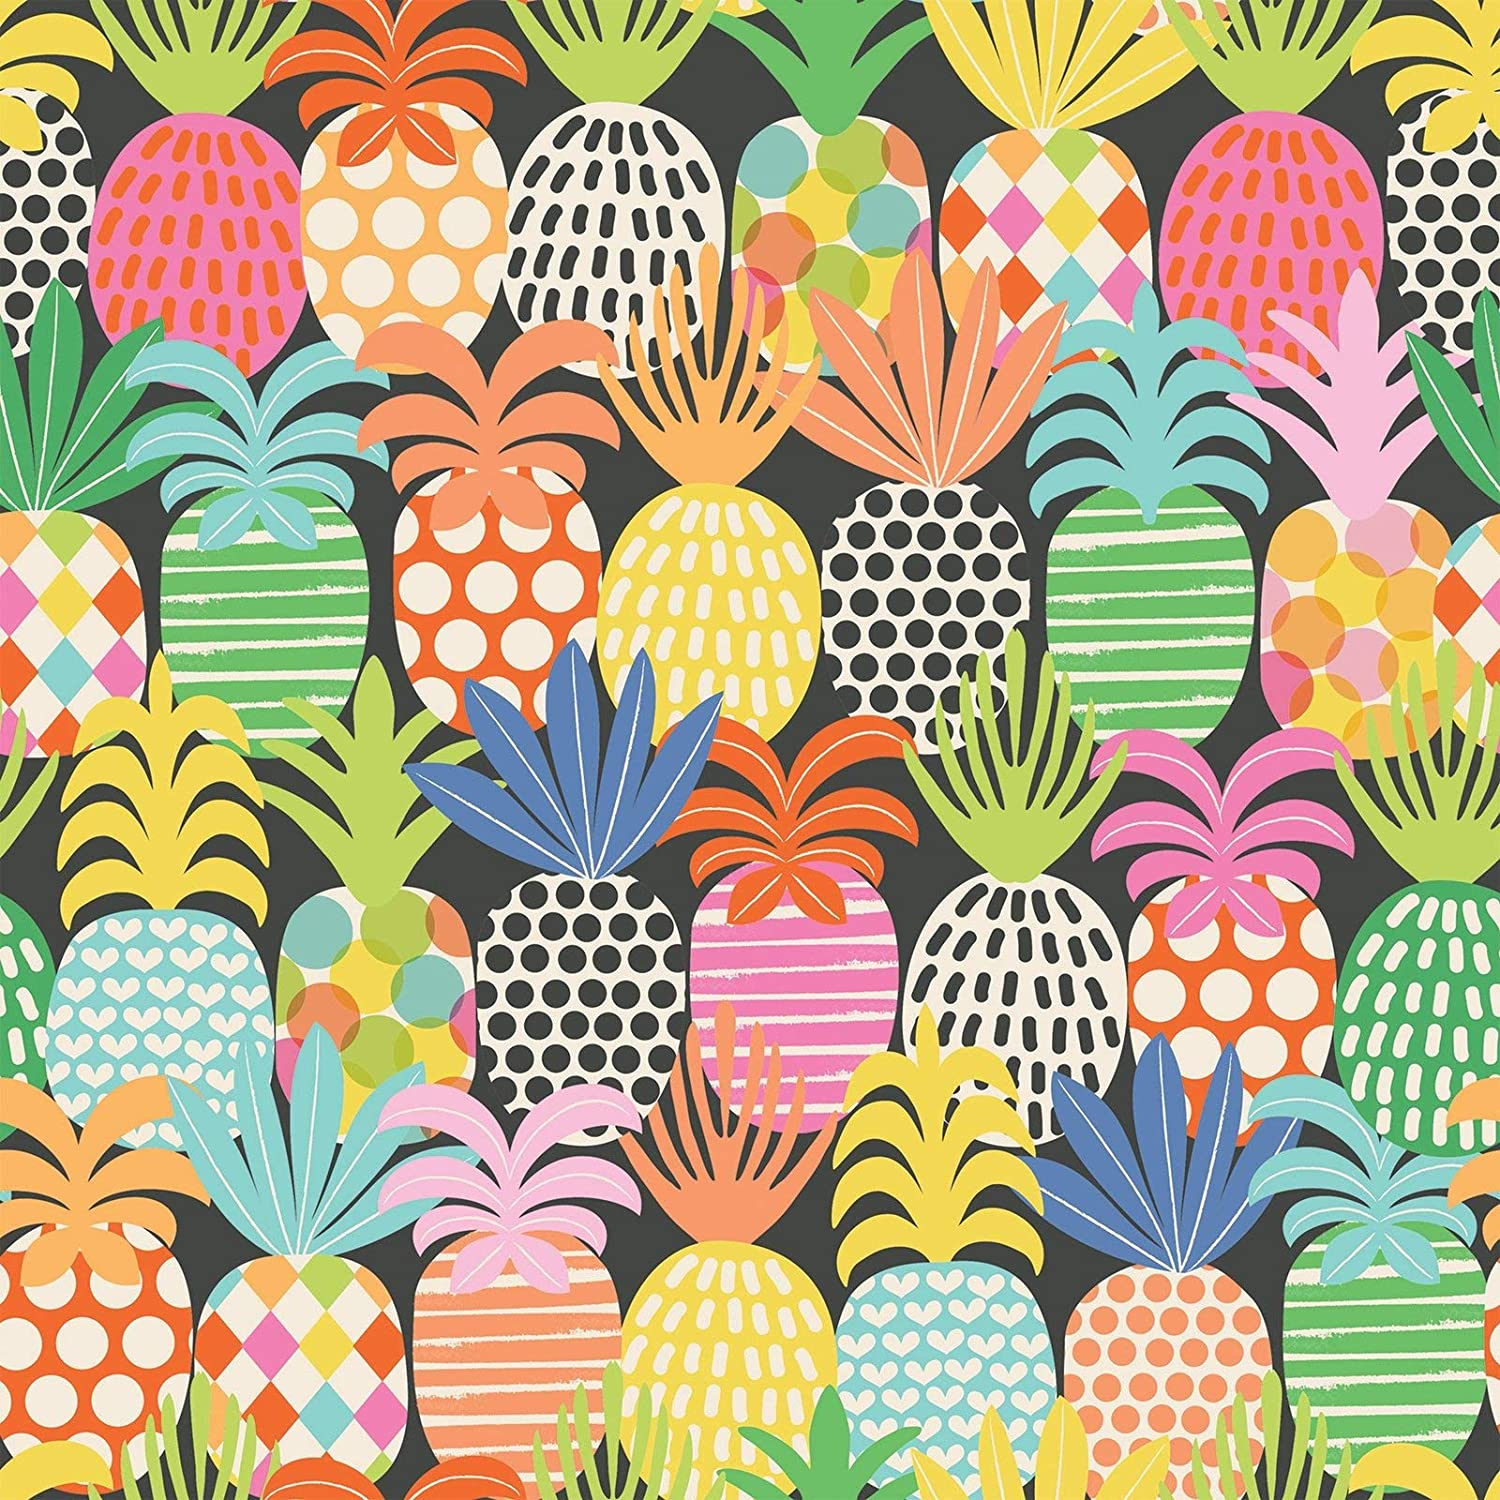 Colors of Rainbow - Pineapple Pop - Gift Wrap Paper, 2.5 Feet x 10 Feet, Folded Flat, Not Rolled - Pineapple Pop